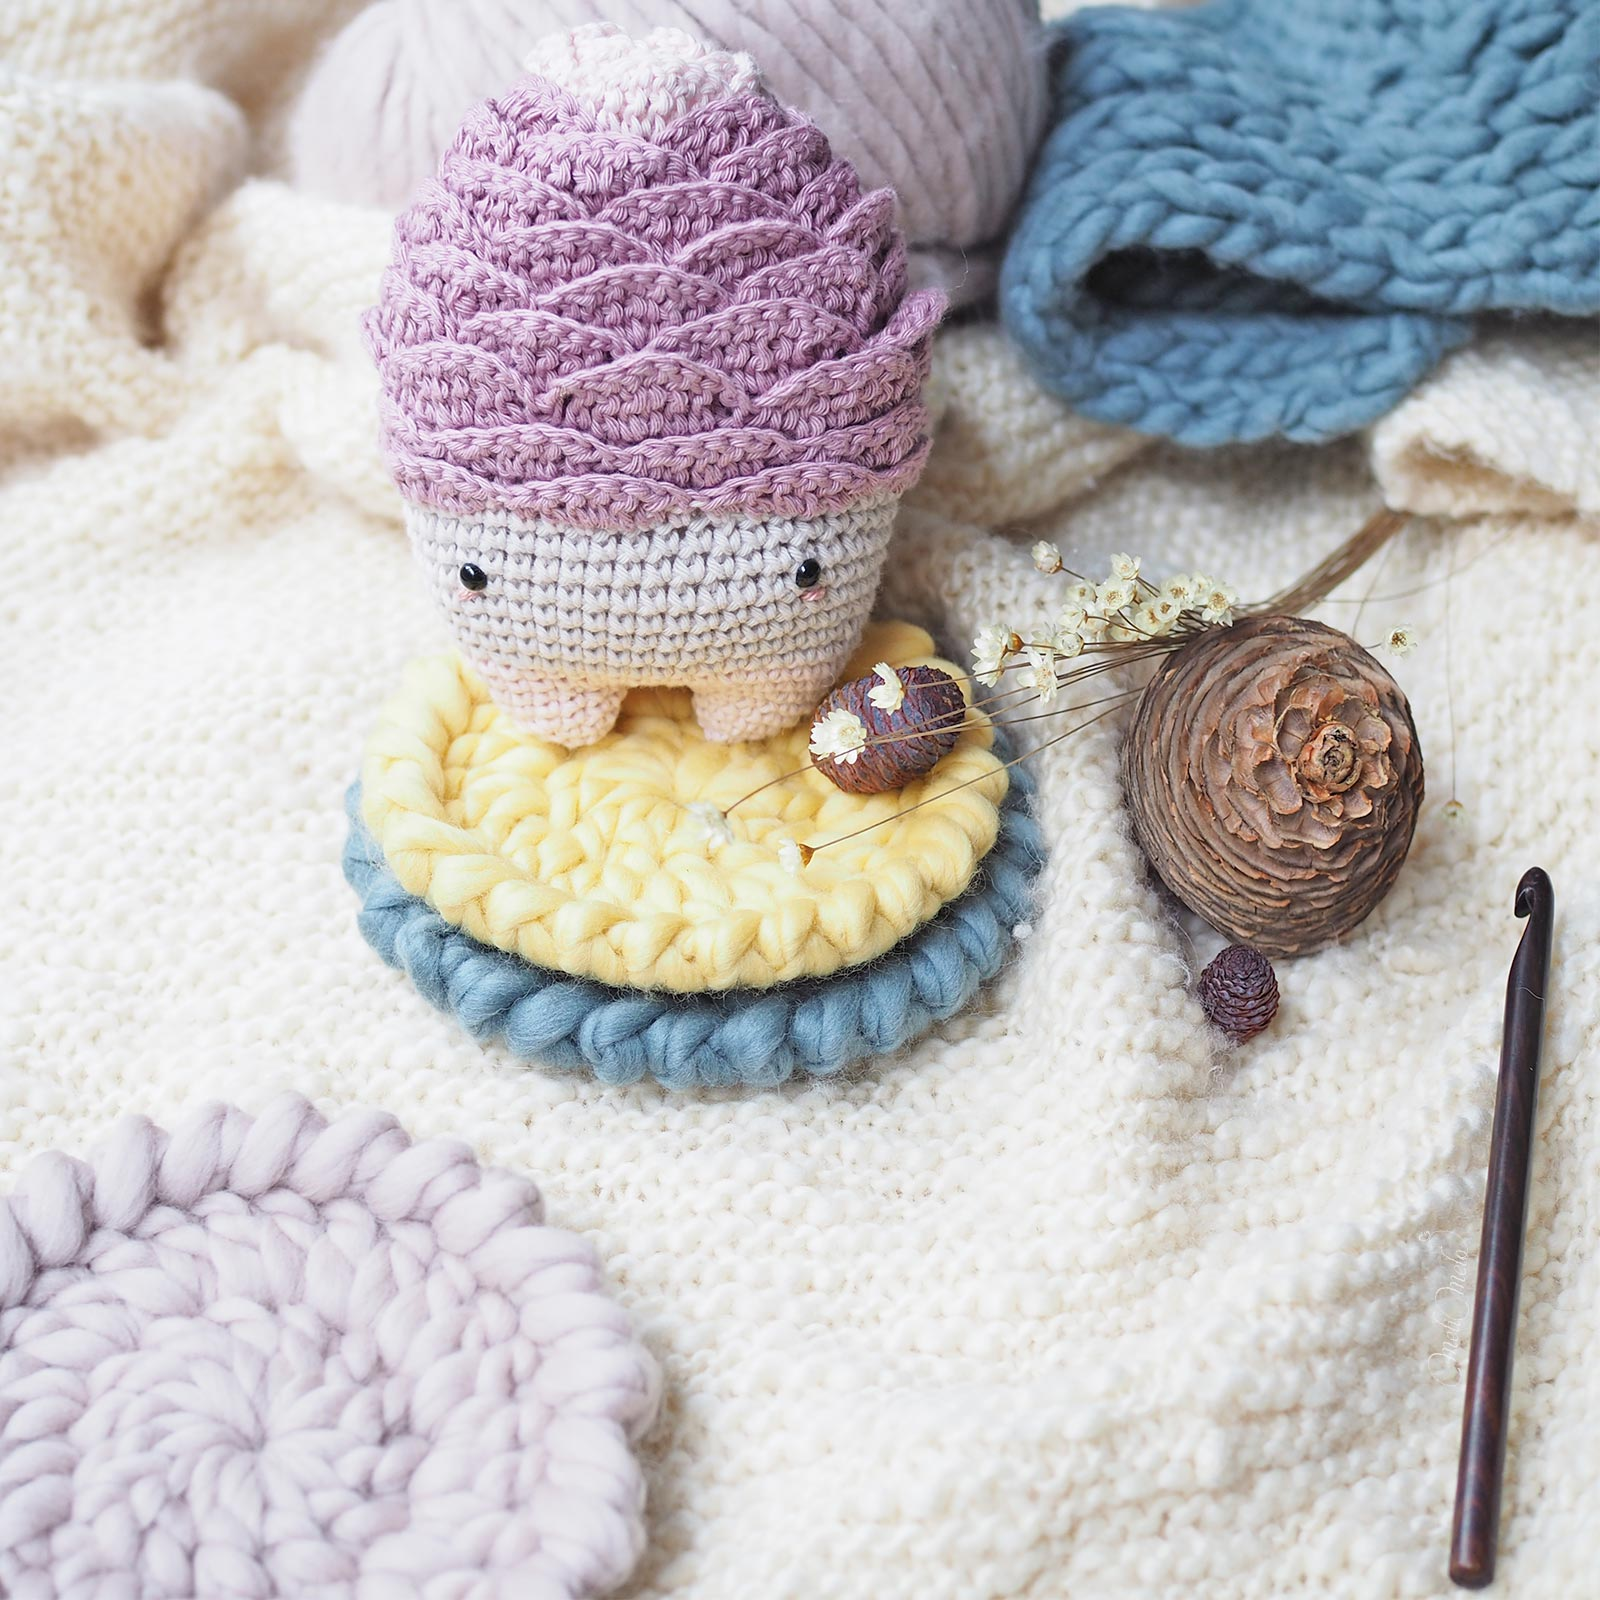 woody-rose-cone-cedre-deco-cosy-sous-mug-laine-weareknitters-laboutiquedemelimelo